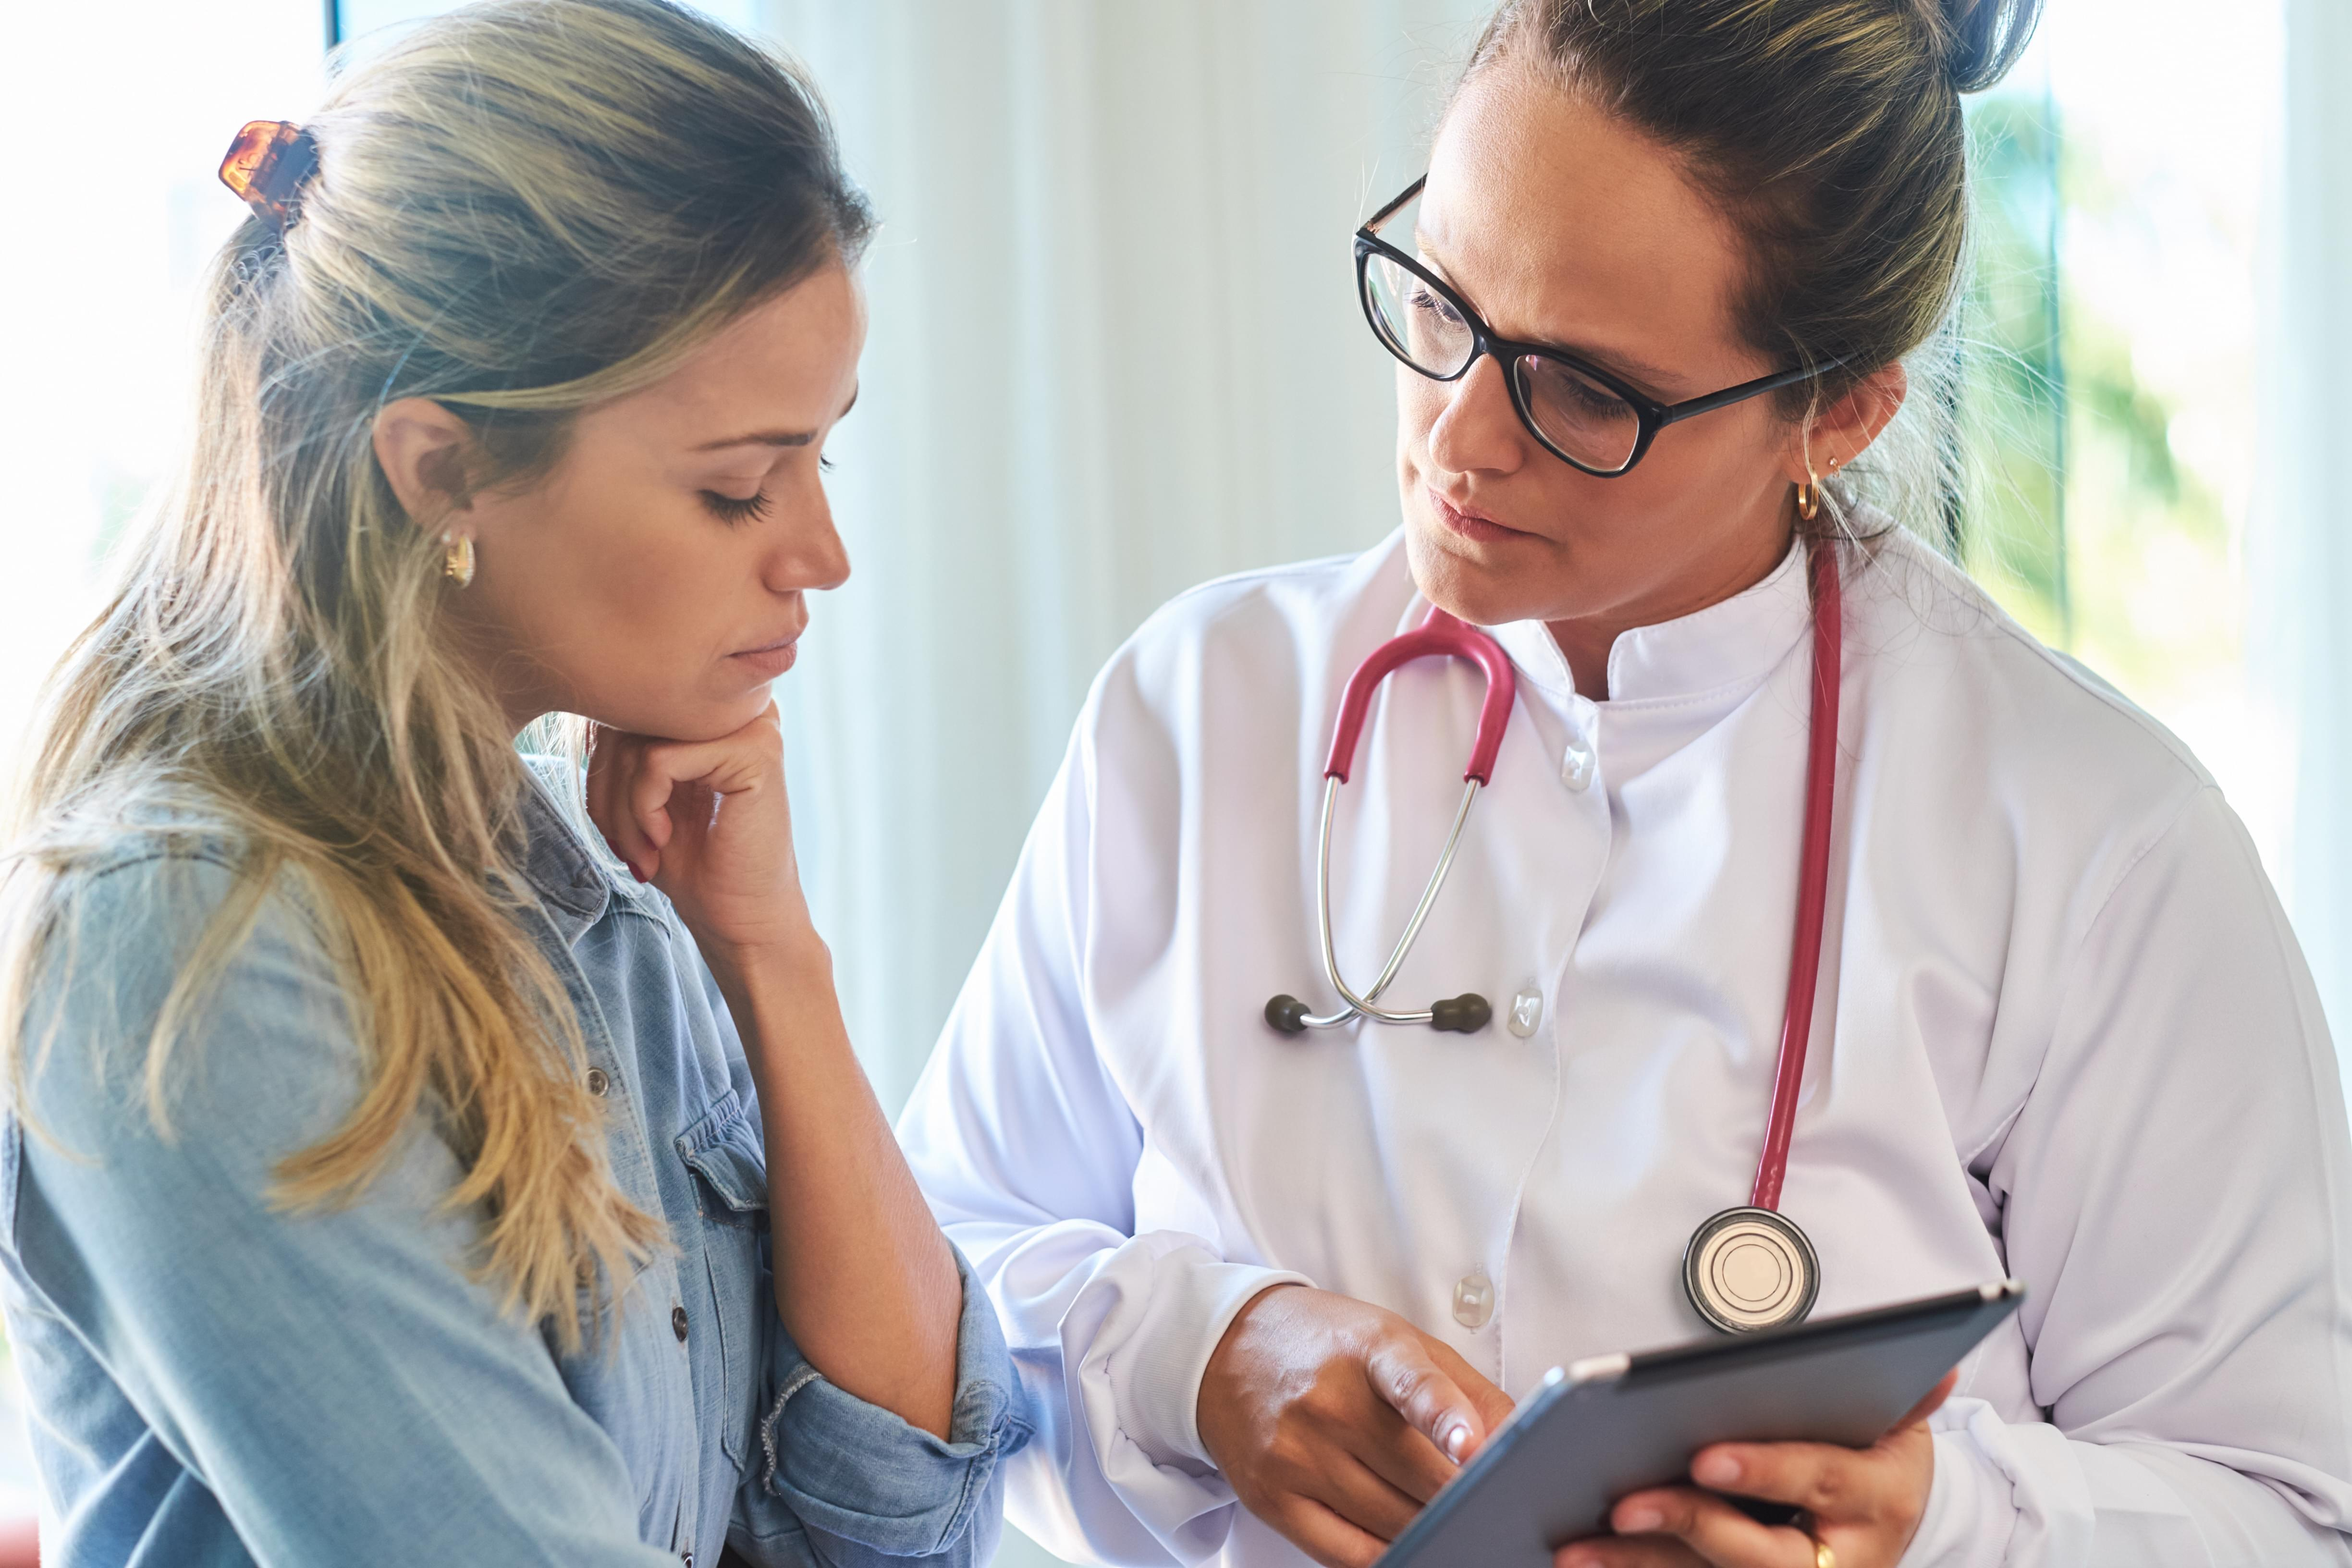 A doctor goes through a patient's health record on a tablet.